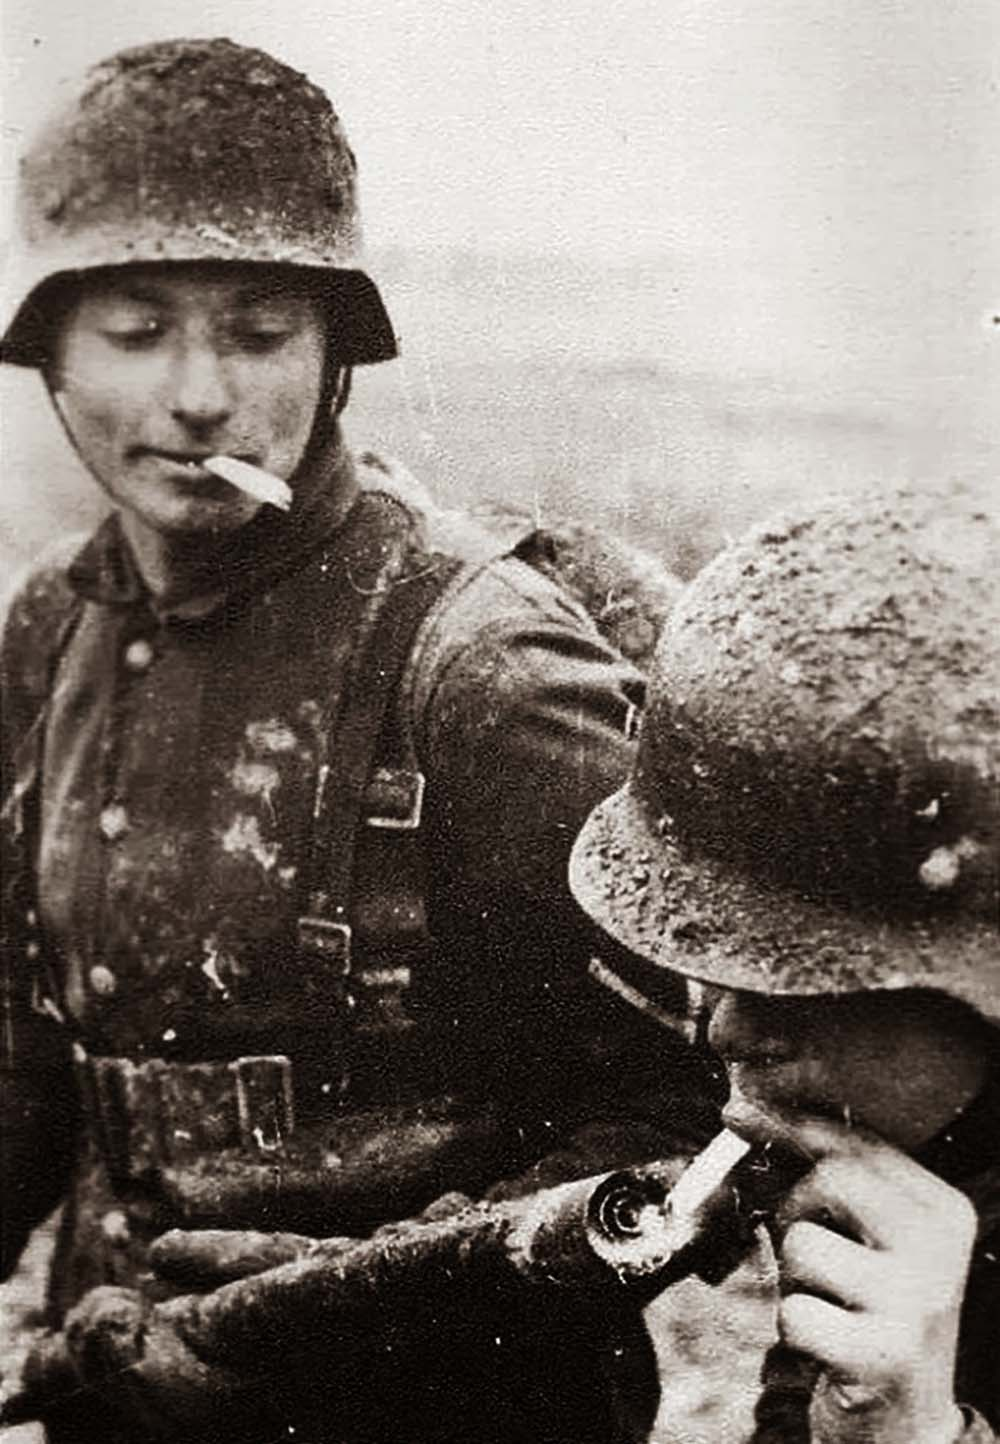 German soldier lighting his cigarette with a flamethrower, 1917.